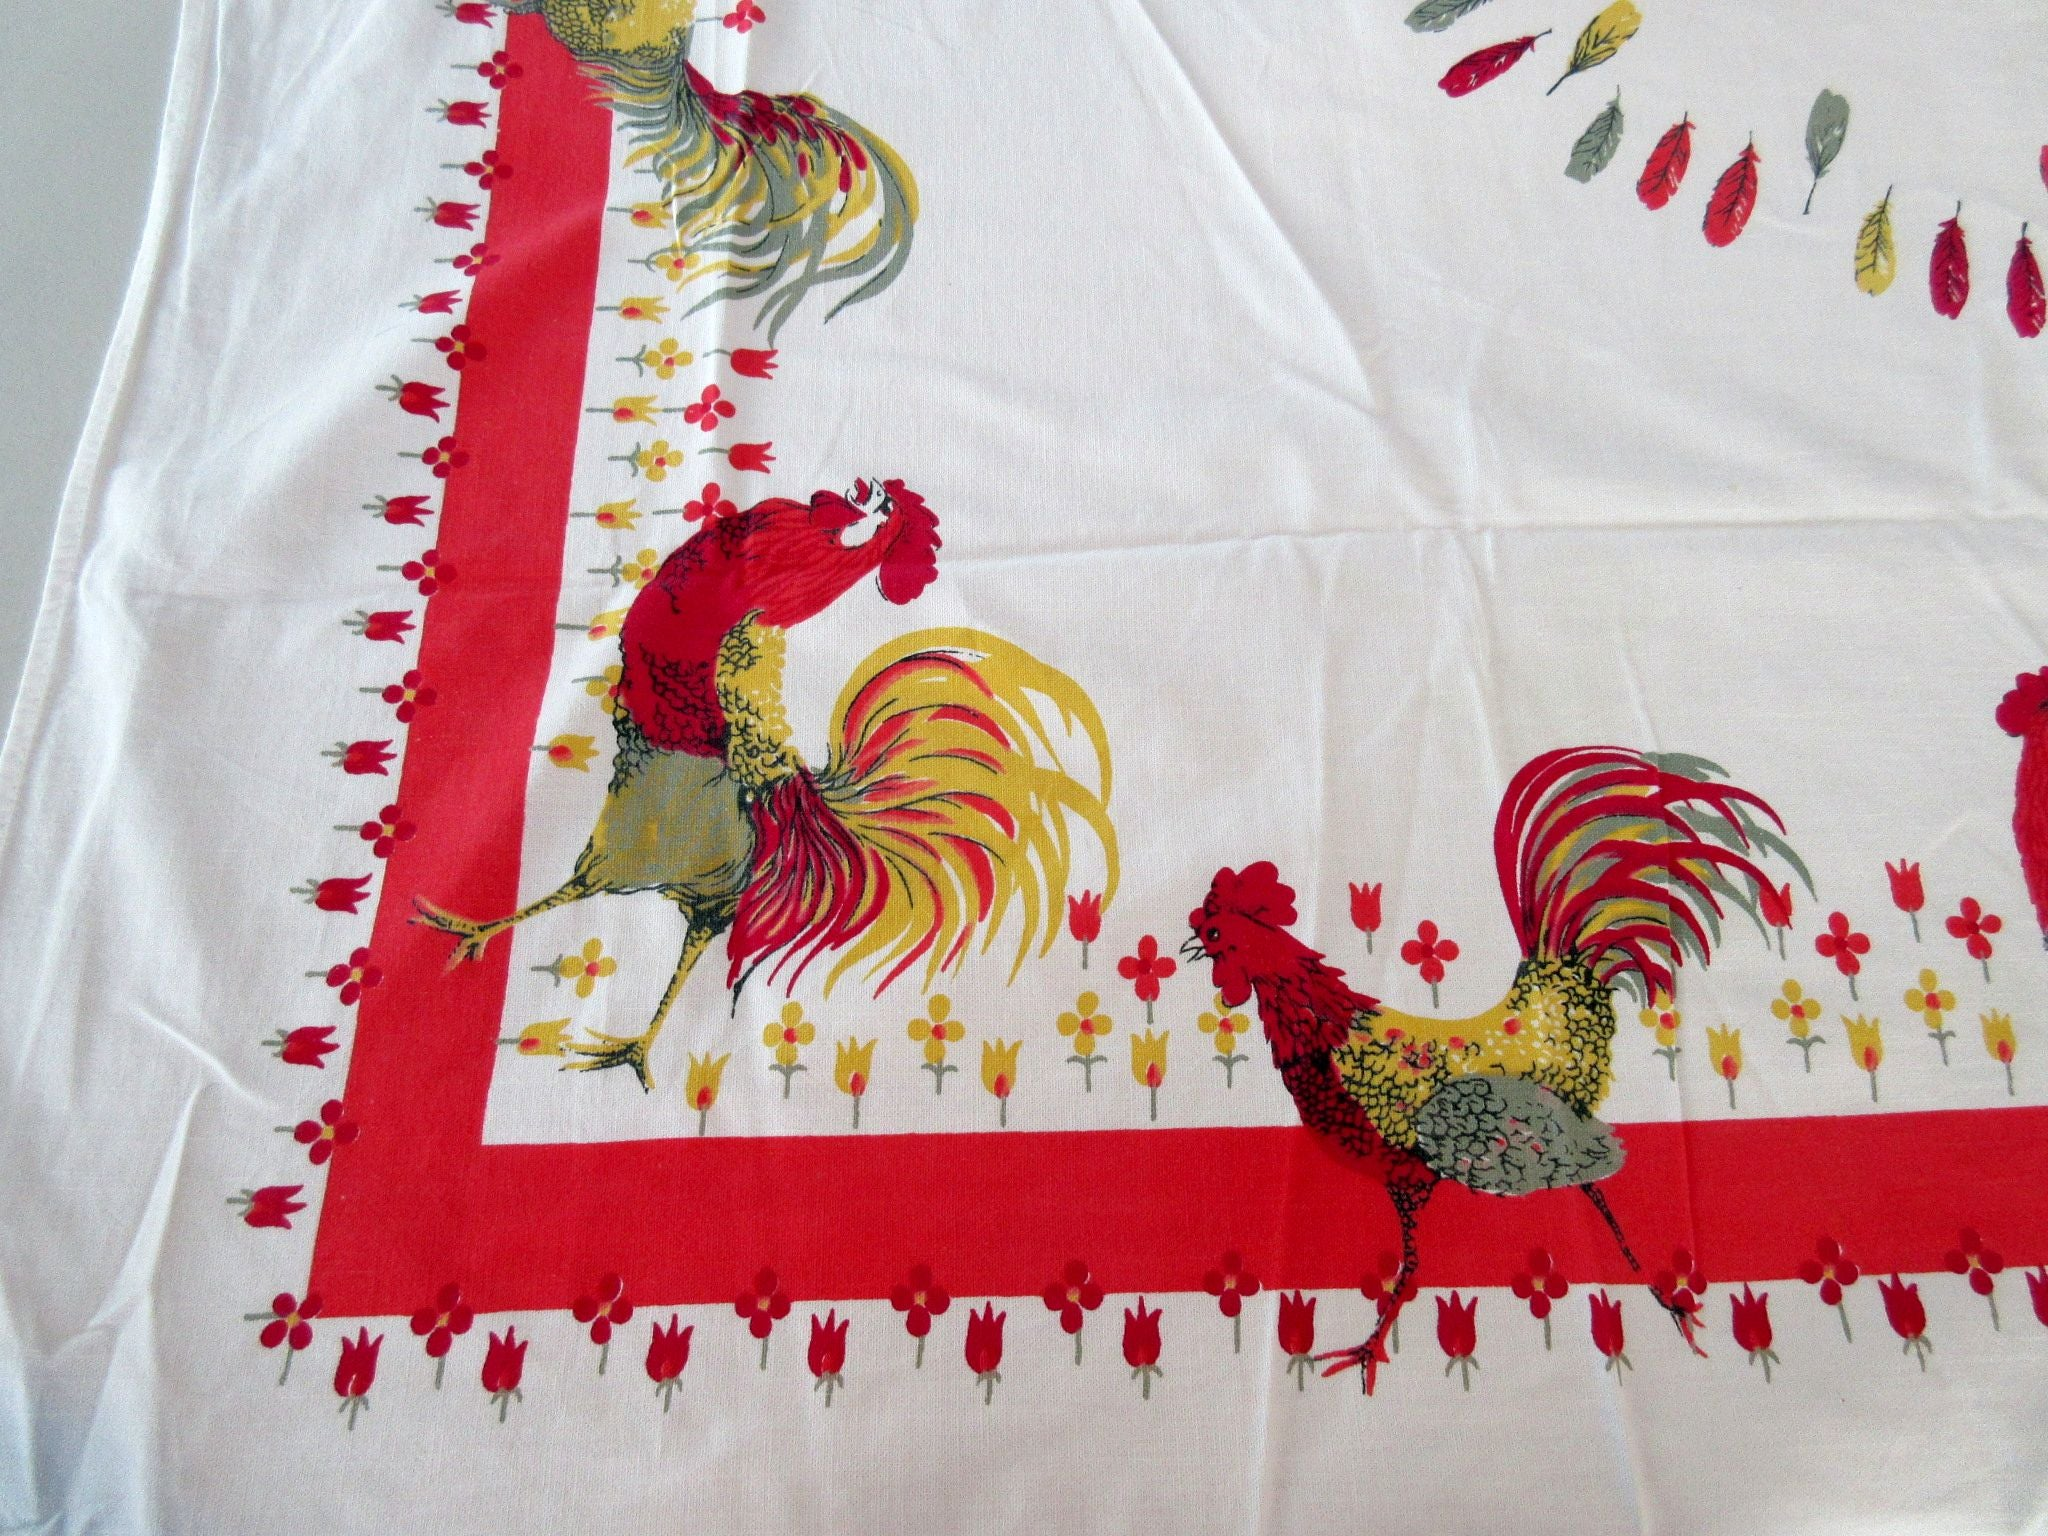 Roosters on Red Cutter? Novelty Vintage Printed Tablecloth (62 X 51)